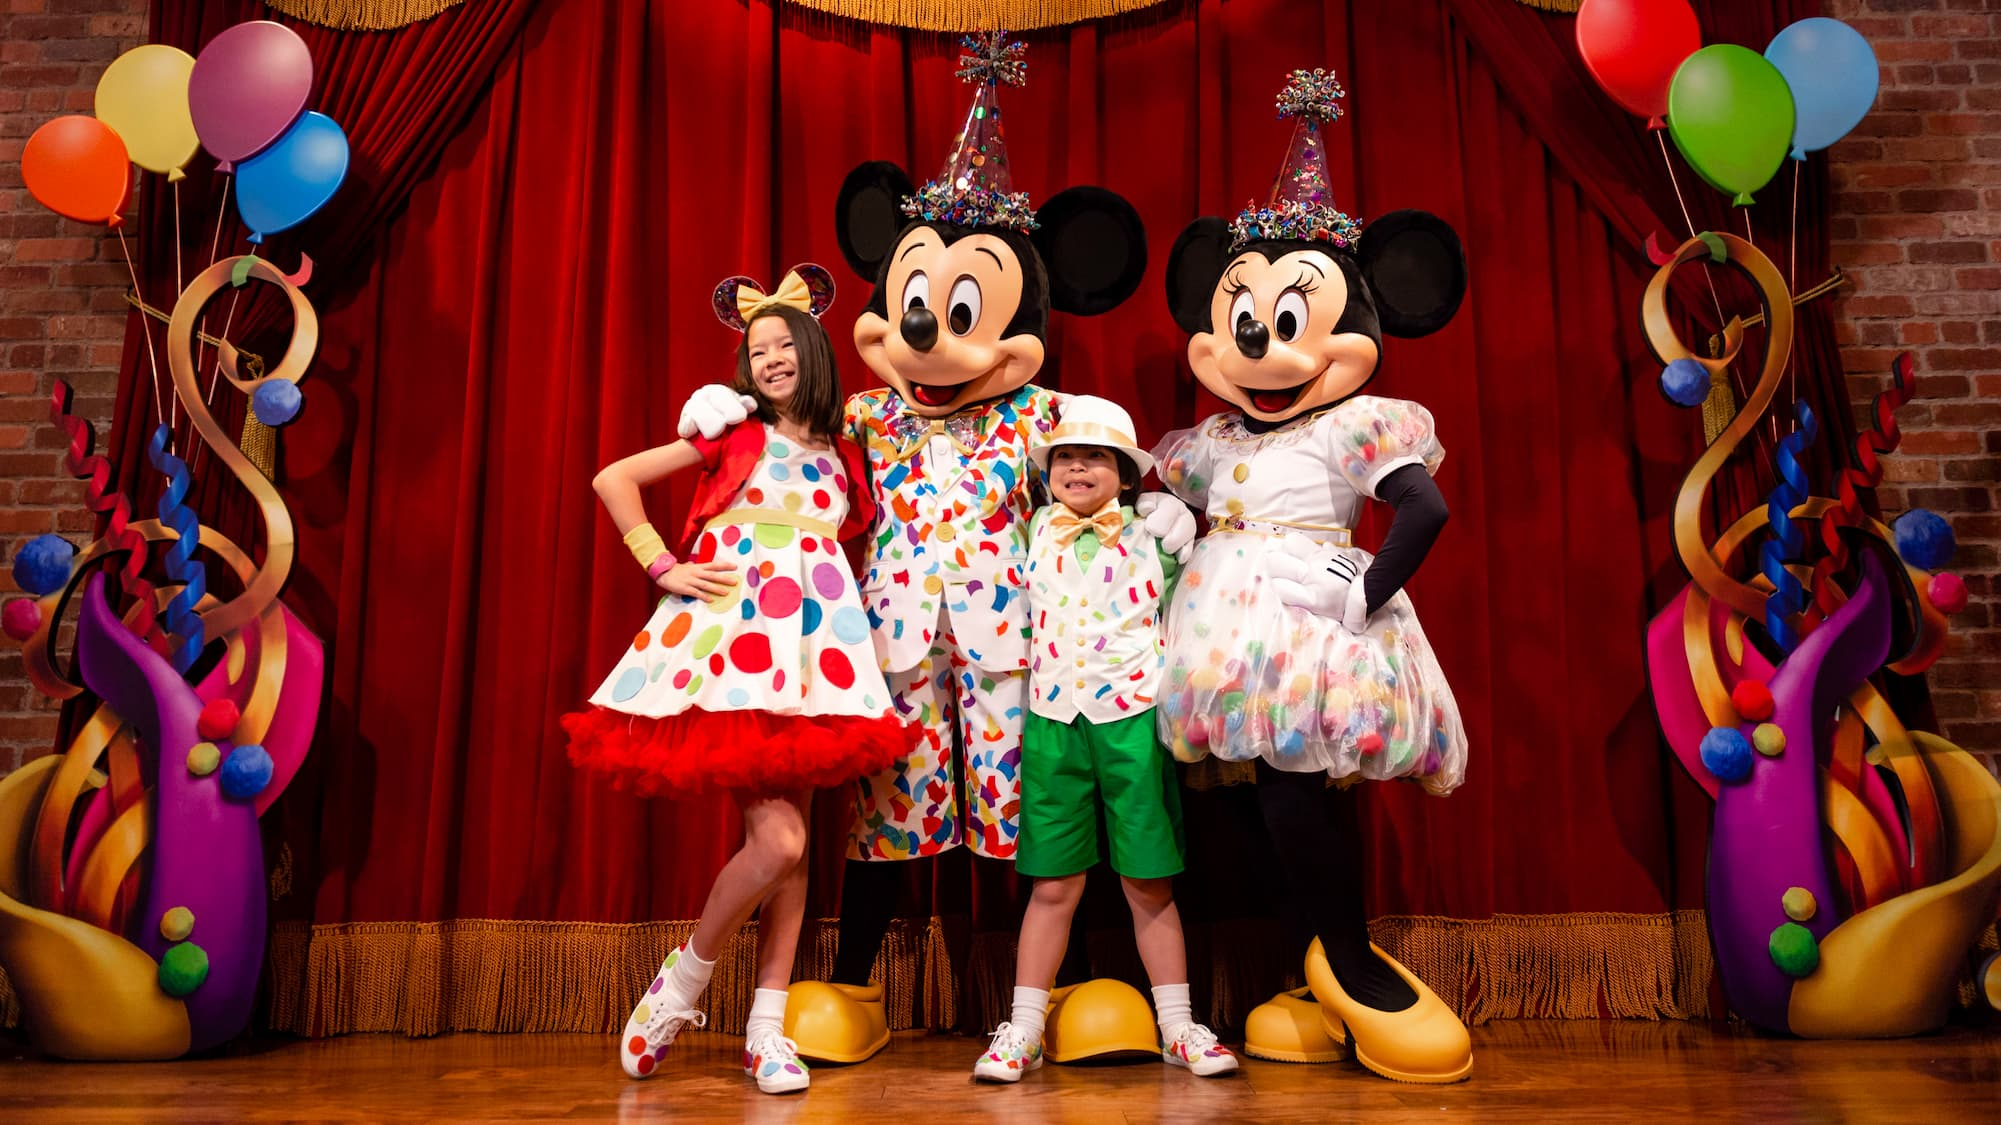 Mickey mouse minnie mouse disney mickey